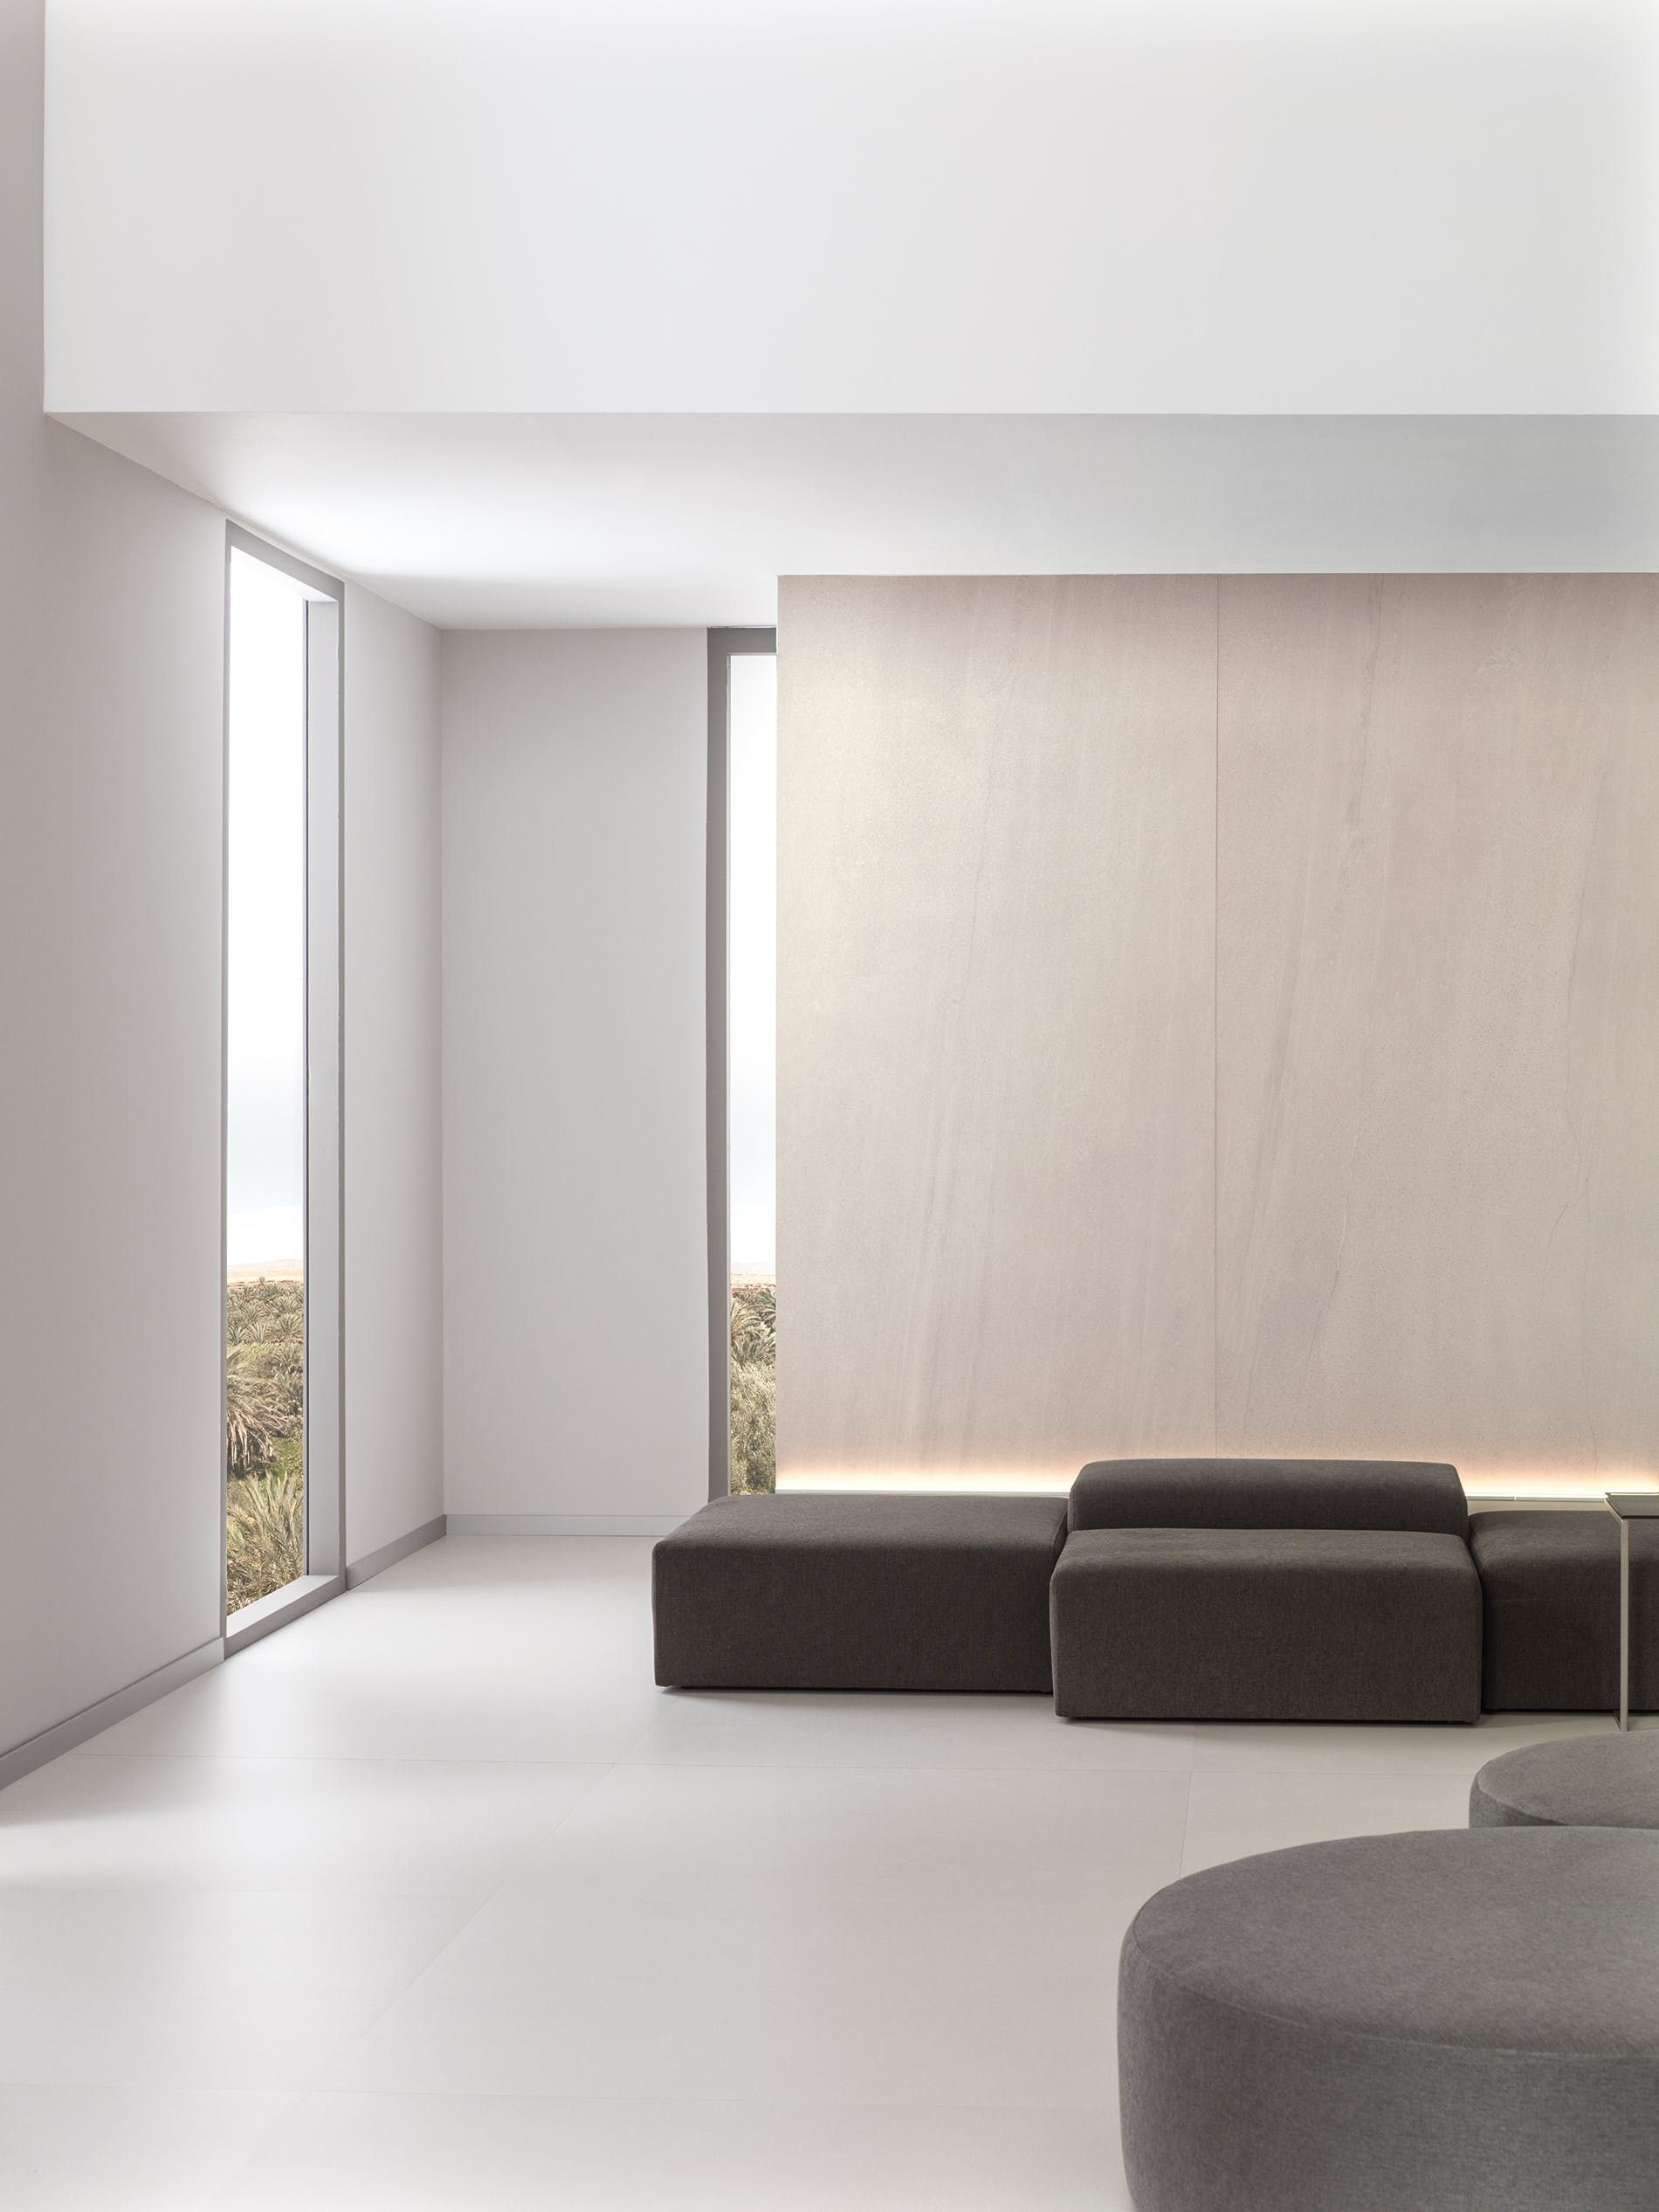 Interio Sofa Utopia Xlight Aged Clay By Urbatek Porcelanosa Grupo Archello Best